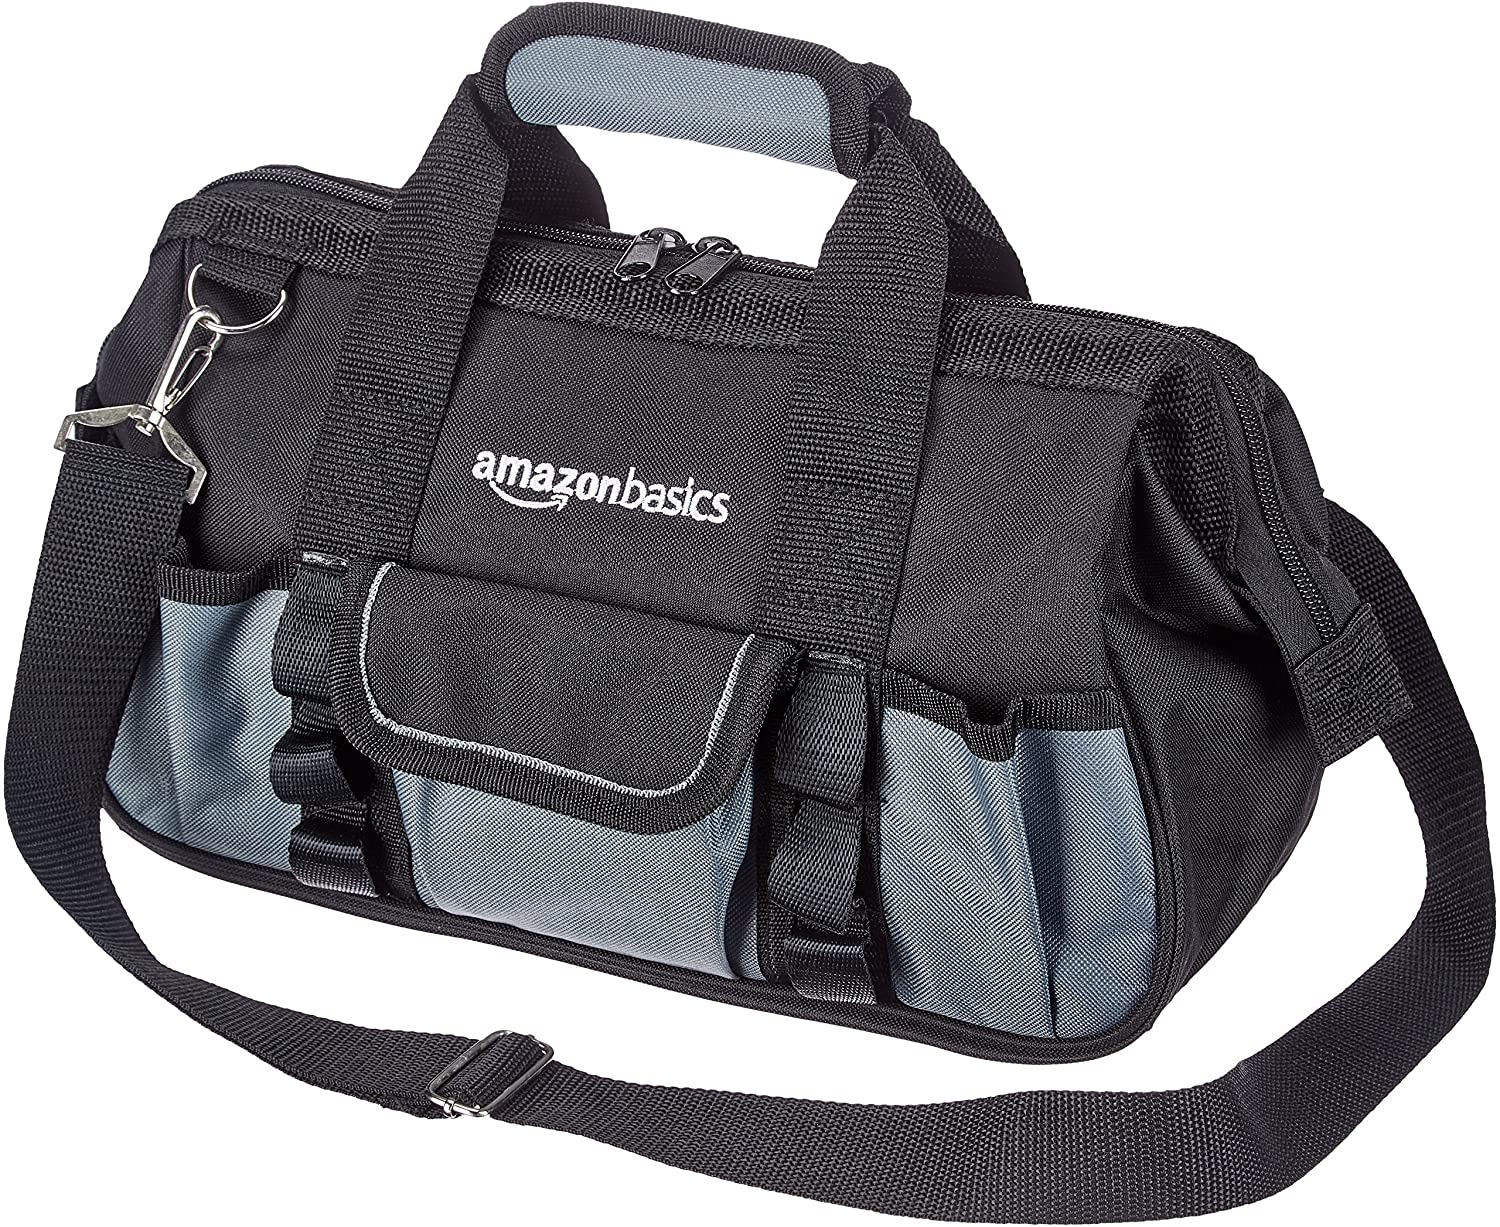 DHgateBasics Durable, Wear-Resistant Base, Tool Bag with Strap, Small (12 Inch)